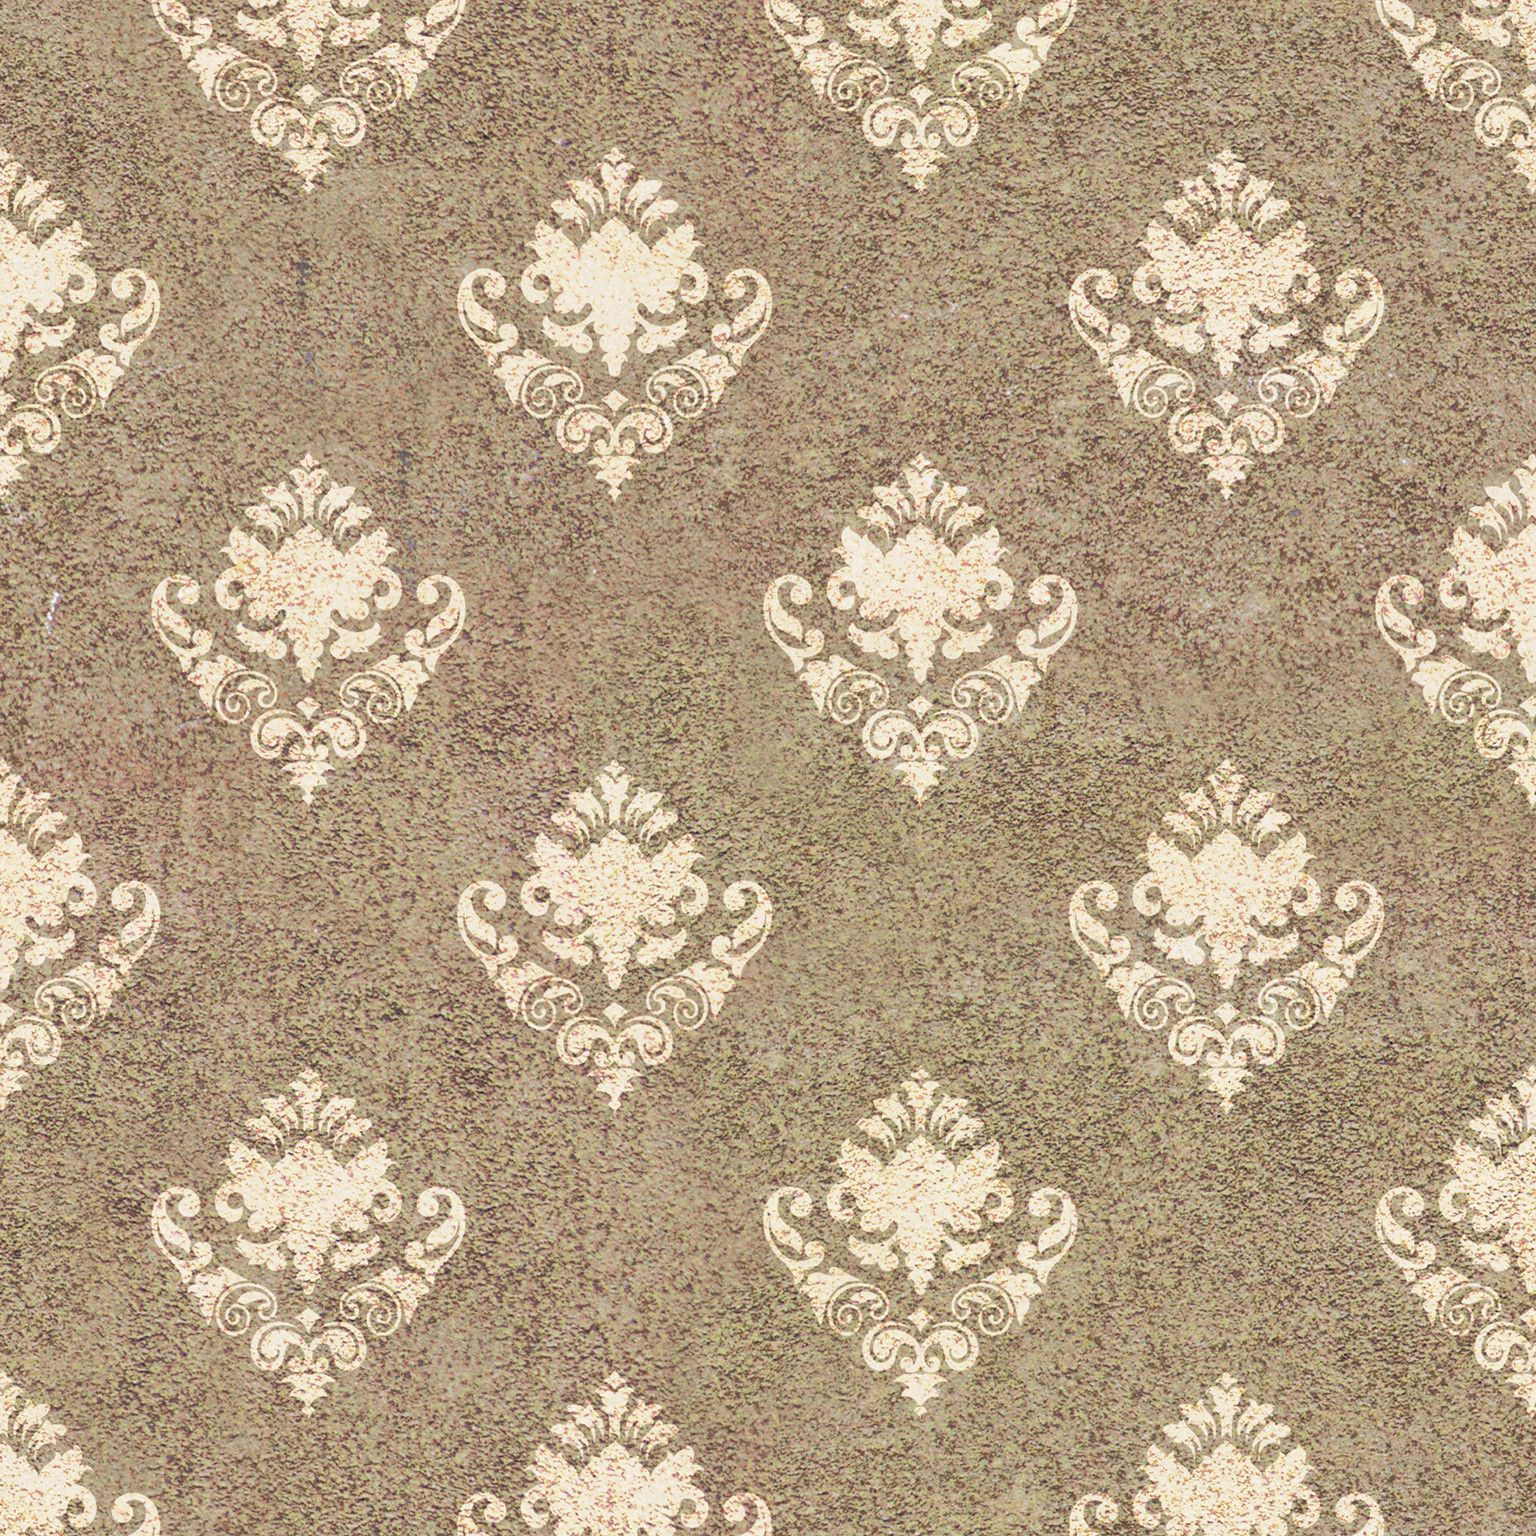 Camilla damask wall stencil stencil for walls painting wall camilla damask wall stencil stencil for walls painting amipublicfo Choice Image